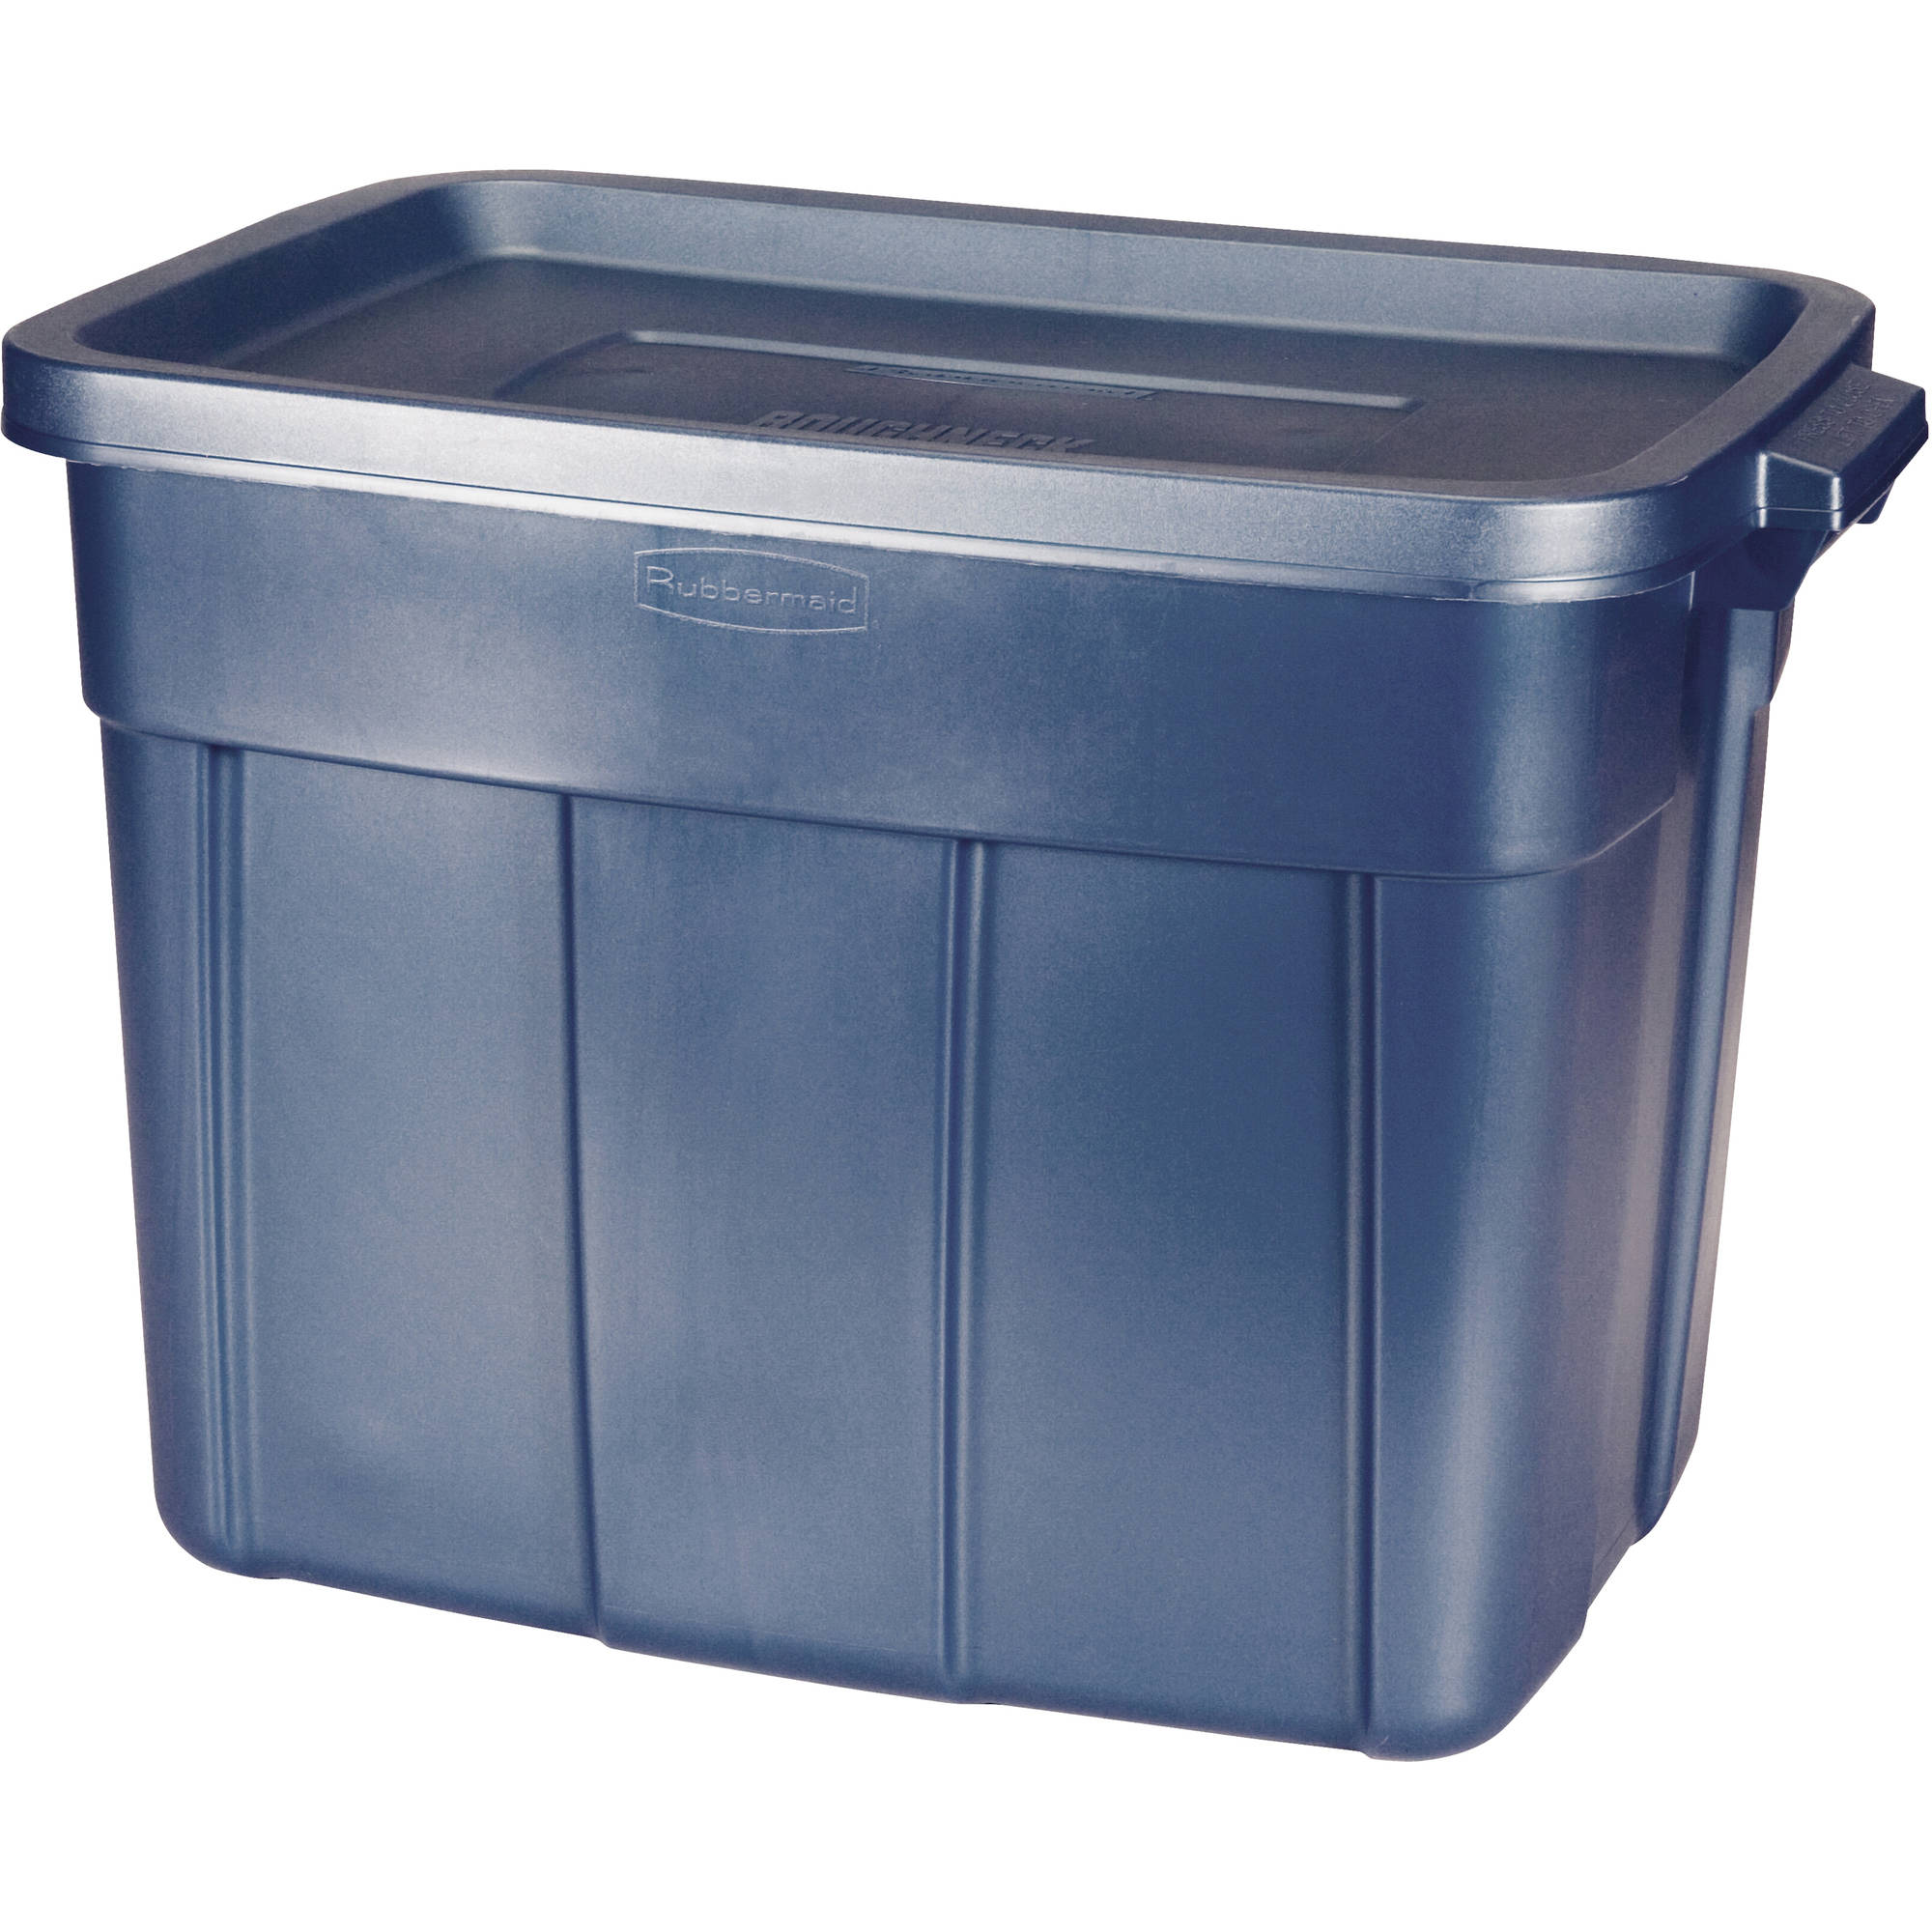 Rubbermaid 18-Gallon (72-Quart) Roughneck Storage Box, Blue, Set of 12